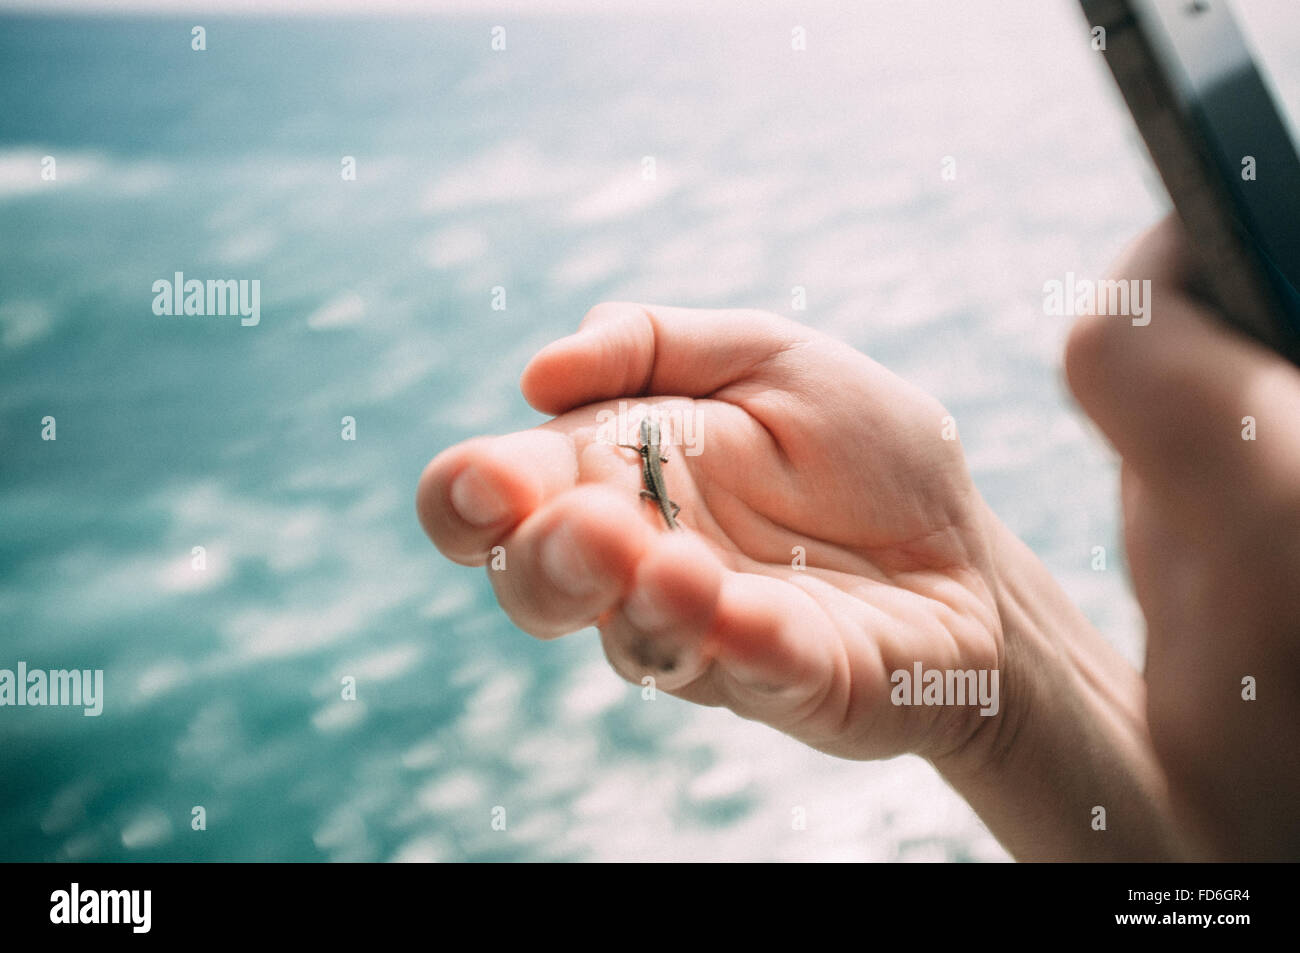 Insect On Human Hand - Stock Image